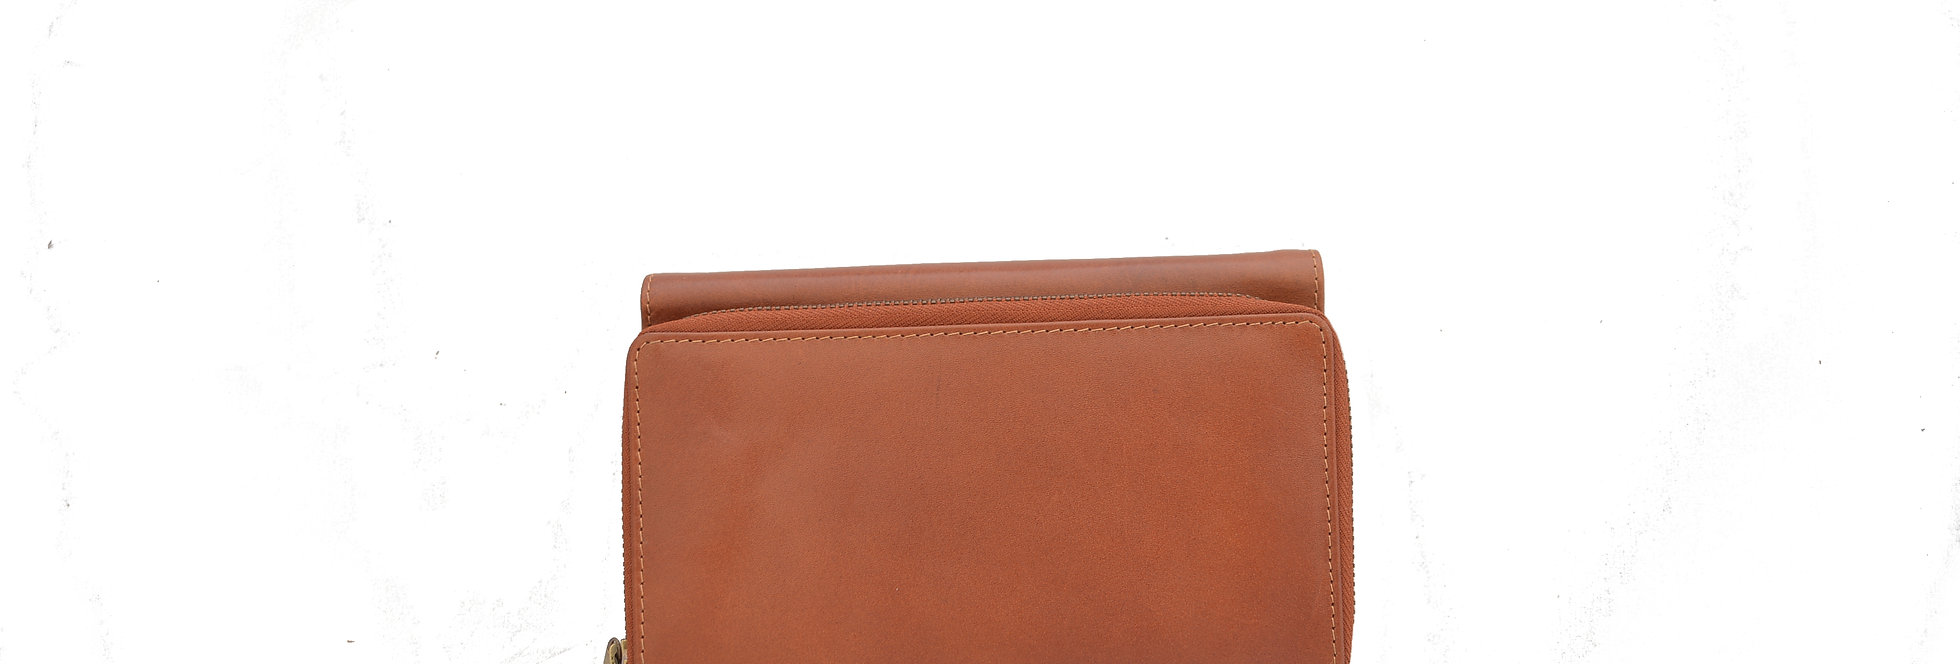 073ebb26572d Women's Italian Leather Clutch Purse Genuine Gorgeous Natural Vegetable Tan  Leather in colours Deep Rich Tan, Brown & Black.